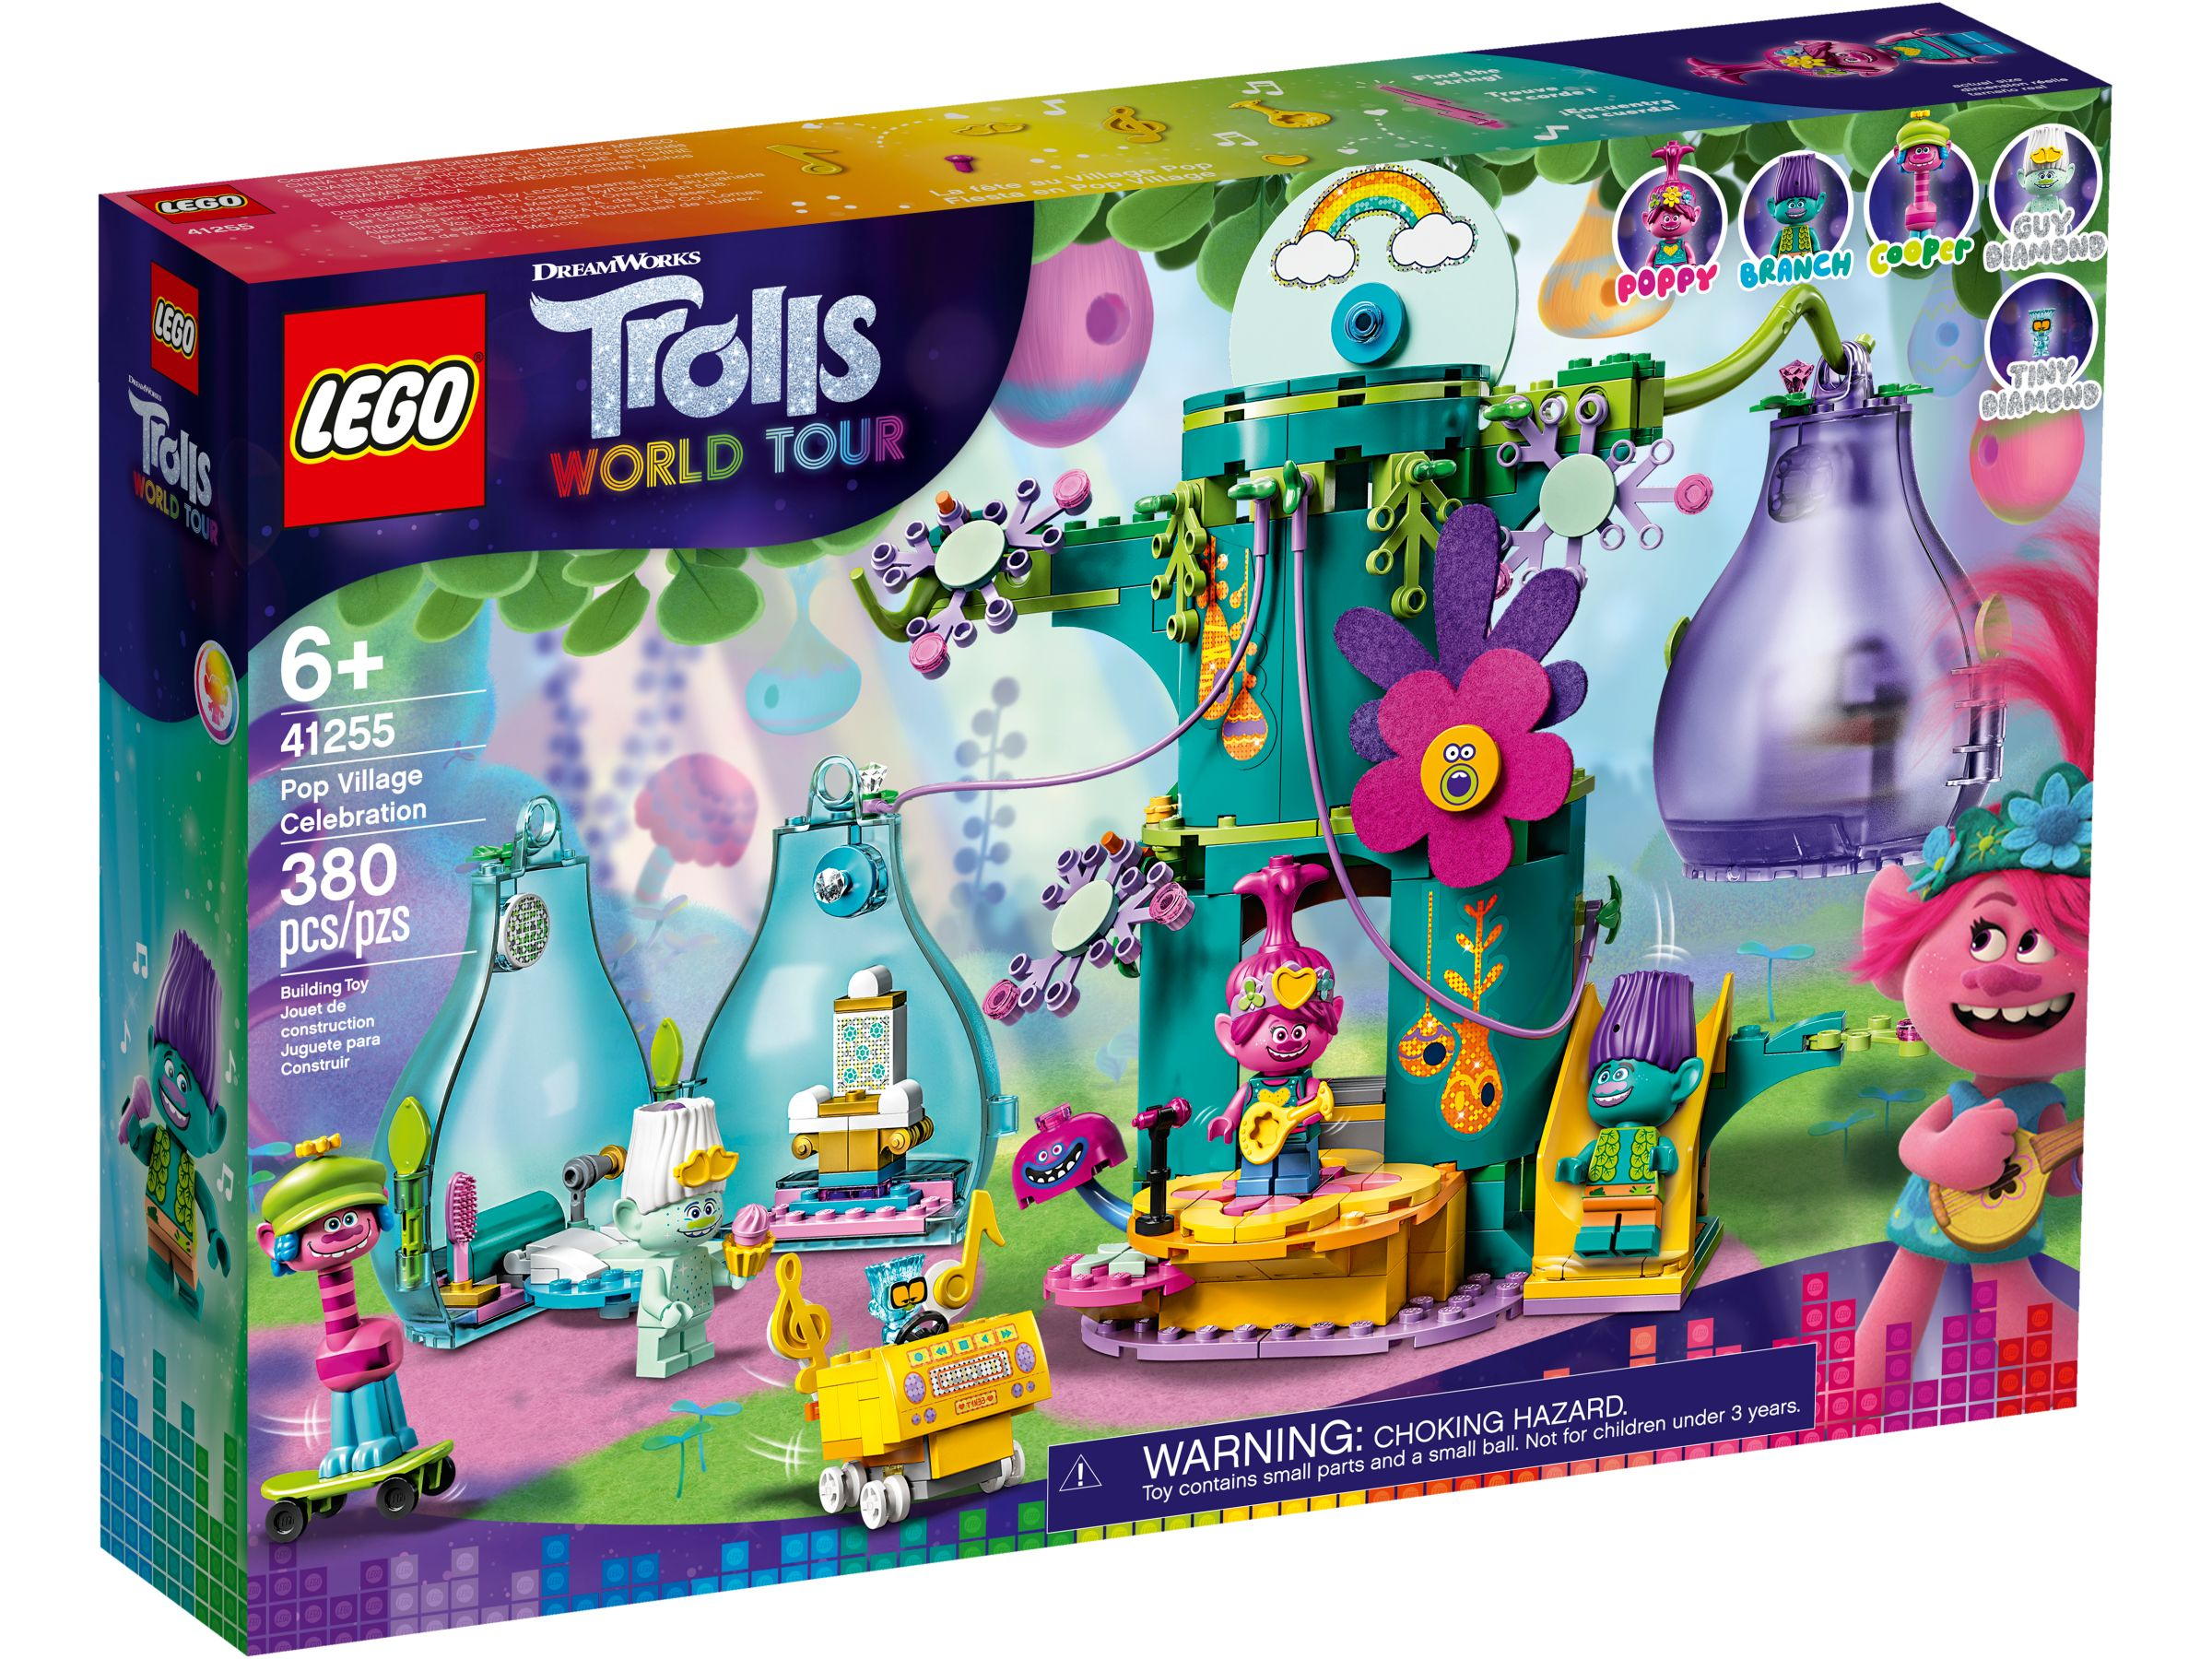 LEGO Trolls: World Tour 41255 Party in Pop City LEGO_41255_alt1.jpg